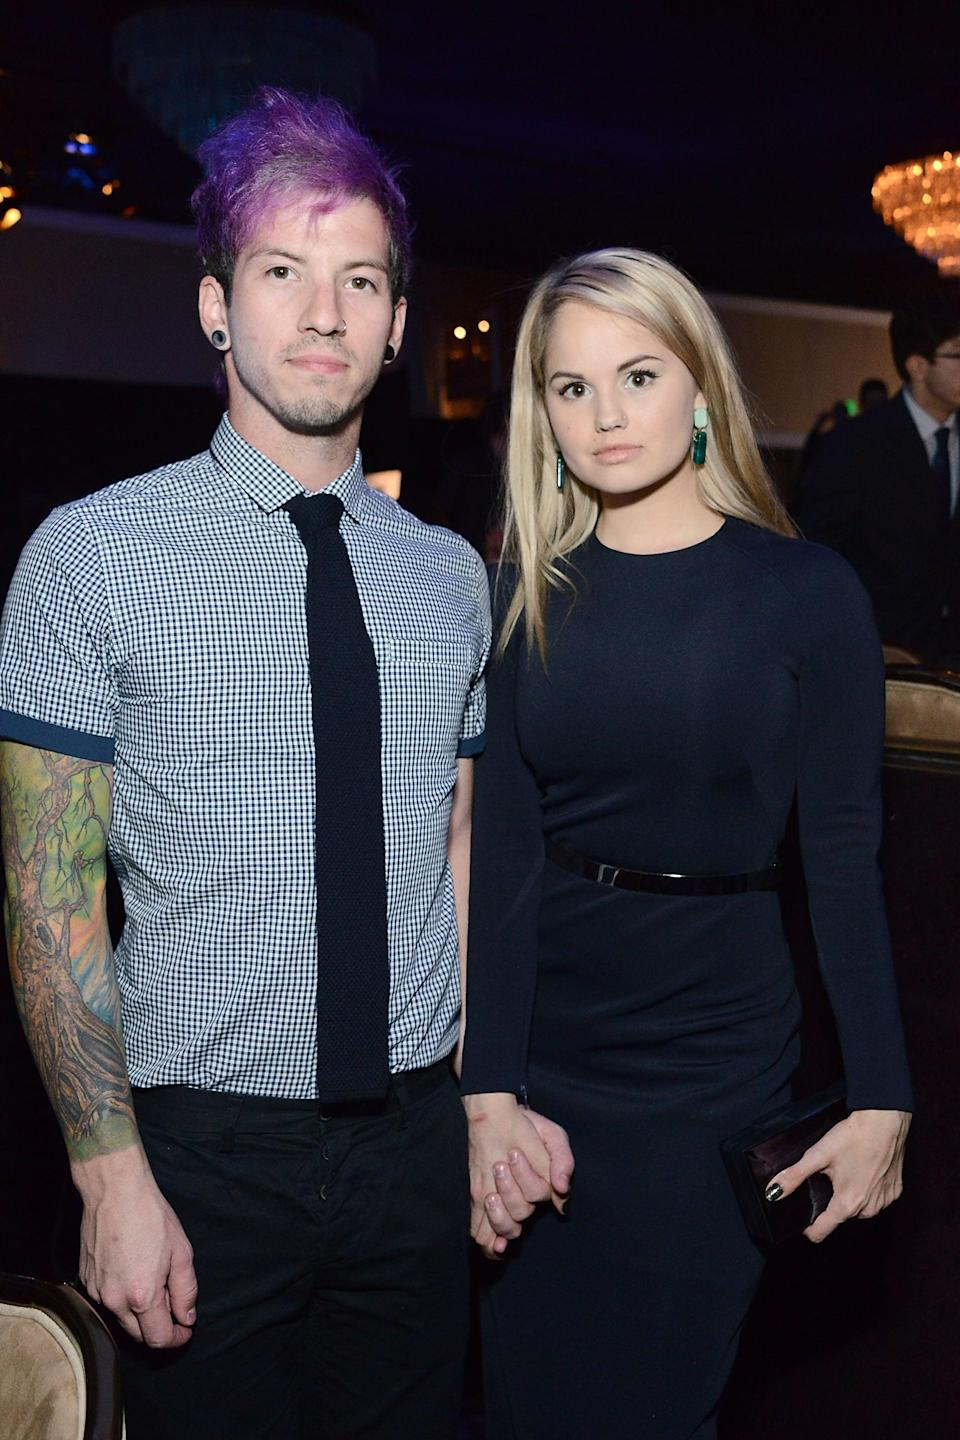 "<p>The former Disney actress <a href=""https://people.com/tv/debby-ryan-engaged-josh-dun/"" class=""link rapid-noclick-resp"" rel=""nofollow noopener"" target=""_blank"" data-ylk=""slk:announced her engagement"">announced her engagement</a> to the Twenty One Pilots musician in December 2018. ""I said yes!"" she shared <a href=""https://twitter.com/DebbyRyan/status/1076678172790280194"" class=""link rapid-noclick-resp"" rel=""nofollow noopener"" target=""_blank"" data-ylk=""slk:in a tweet"">in a tweet</a>. ""Well technically I said 'NO WAY' twice but I meant yes."" Josh also <a href=""https://www.instagram.com/p/Brtp0rWhxAZ/"" class=""link rapid-noclick-resp"" rel=""nofollow noopener"" target=""_blank"" data-ylk=""slk:posted about the proposal"">posted about the proposal</a> on Instagram, saying, ""I found a tree house in the woods in New Zealand and proposed to my girl. She my dude for life. I love you Debby.""</p>"